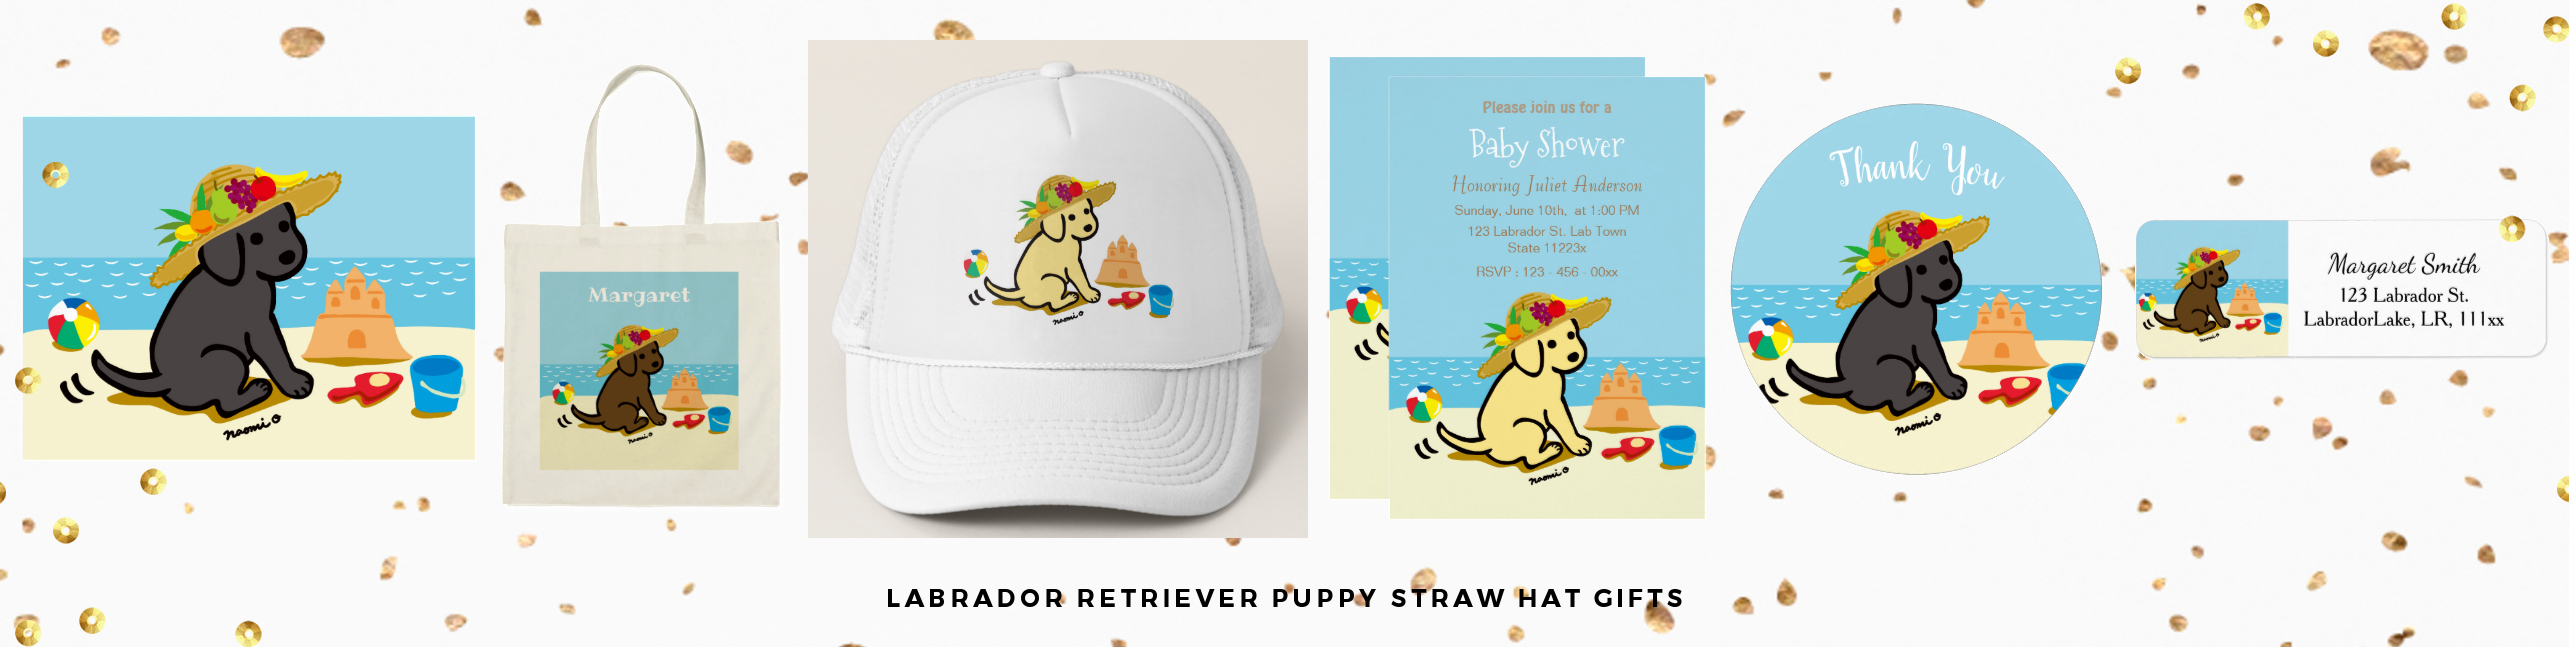 Labrador Retriever Puppy Straw Hat Gifts by HappyLabradors